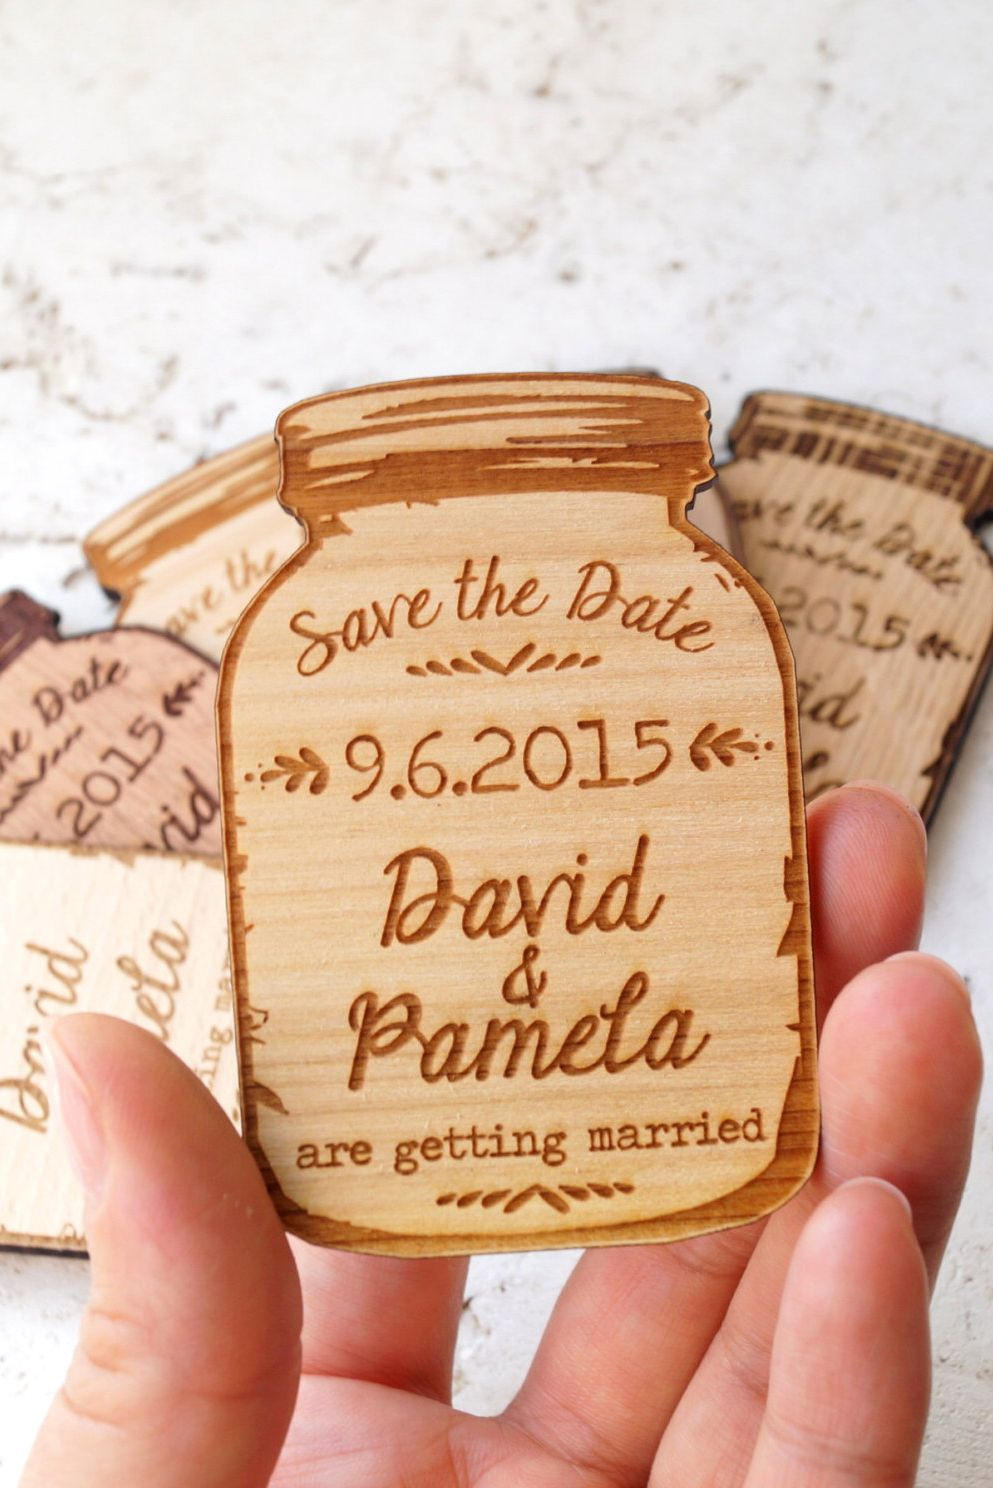 wedding renewal invitation ideas%0A Wood SavetheDate magnets  mason jar magnets  wooden save the date  magnets  engraved magnets  rustic save the dates wedding invitations